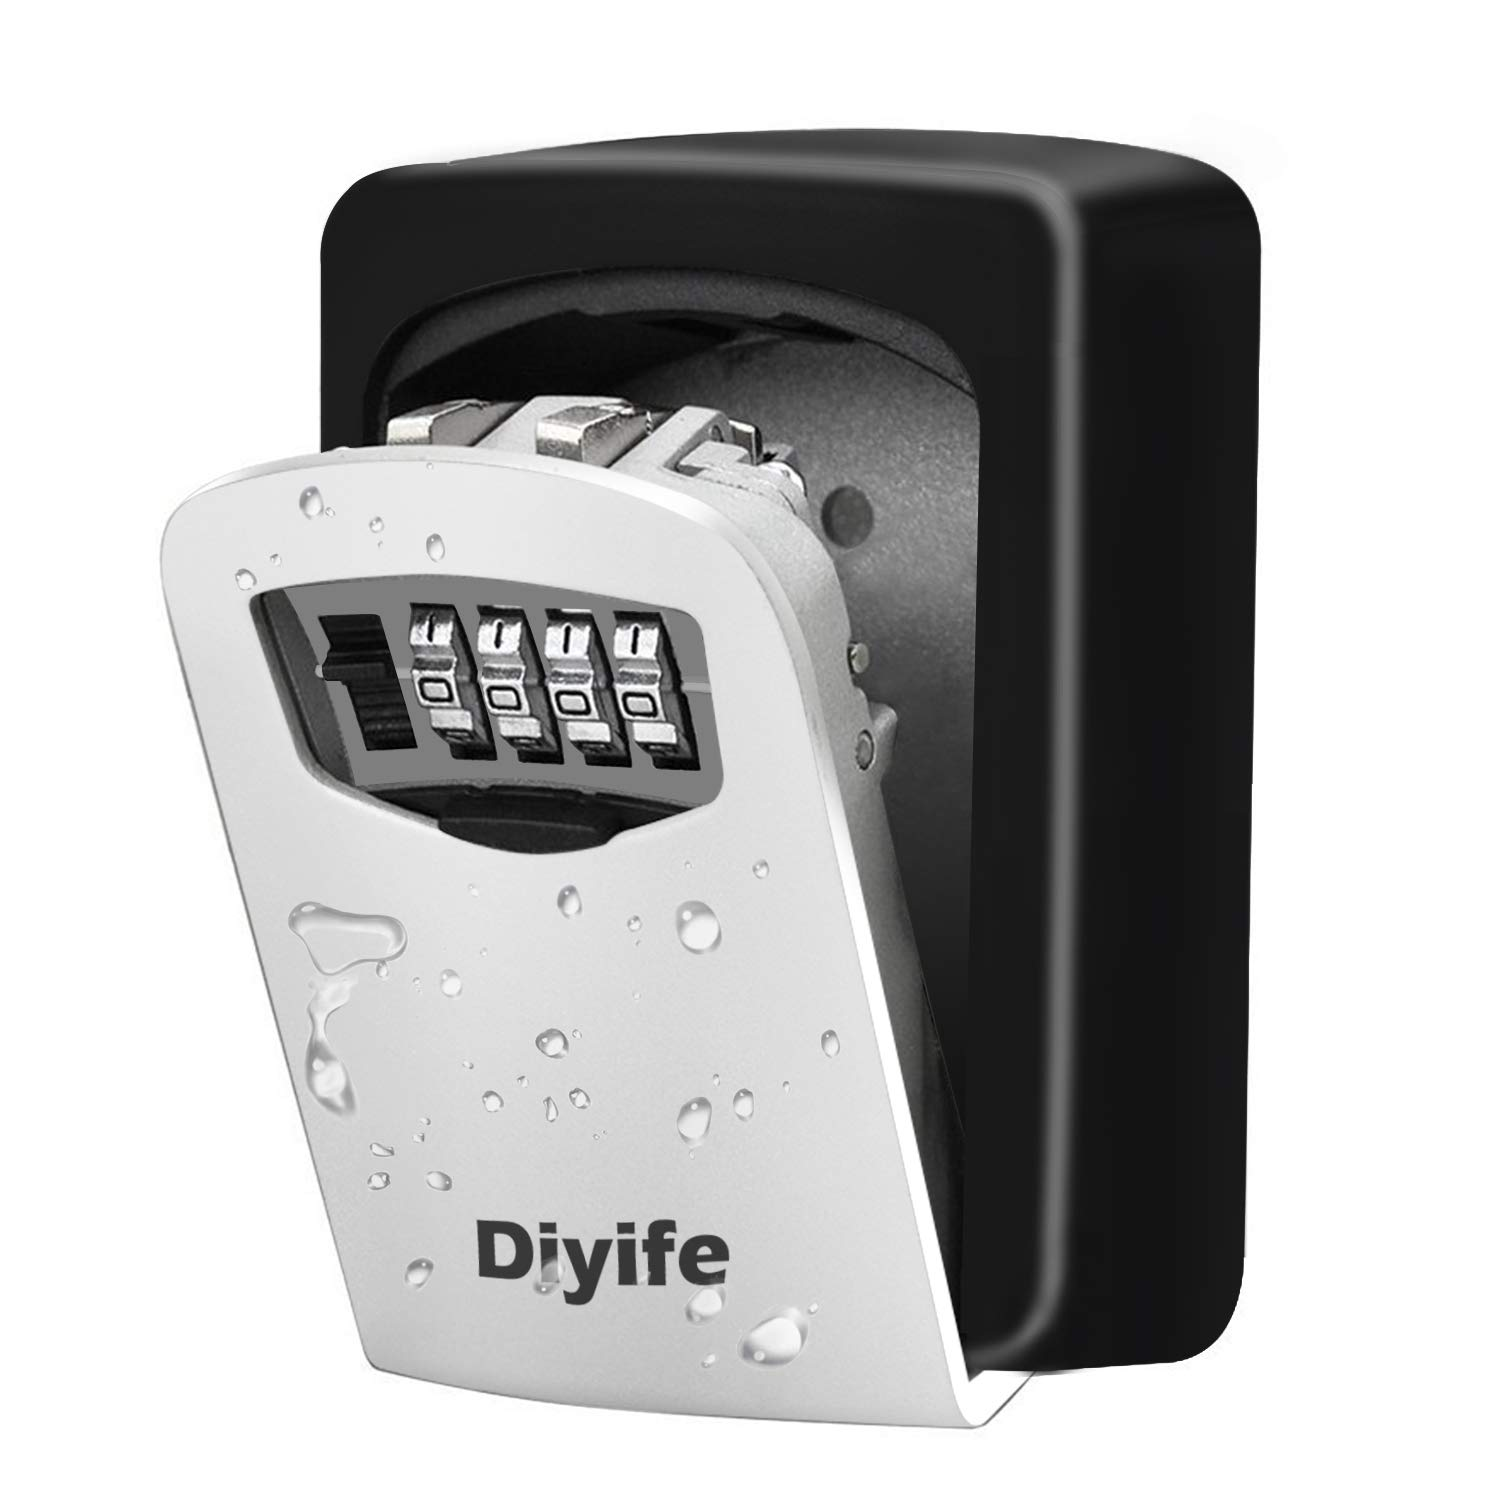 Diyife Key Lock Box, [Updated Version][Wall Mounted] Combination Key Safe Storage Lock Box for for Home Garage School Spare House Keys.